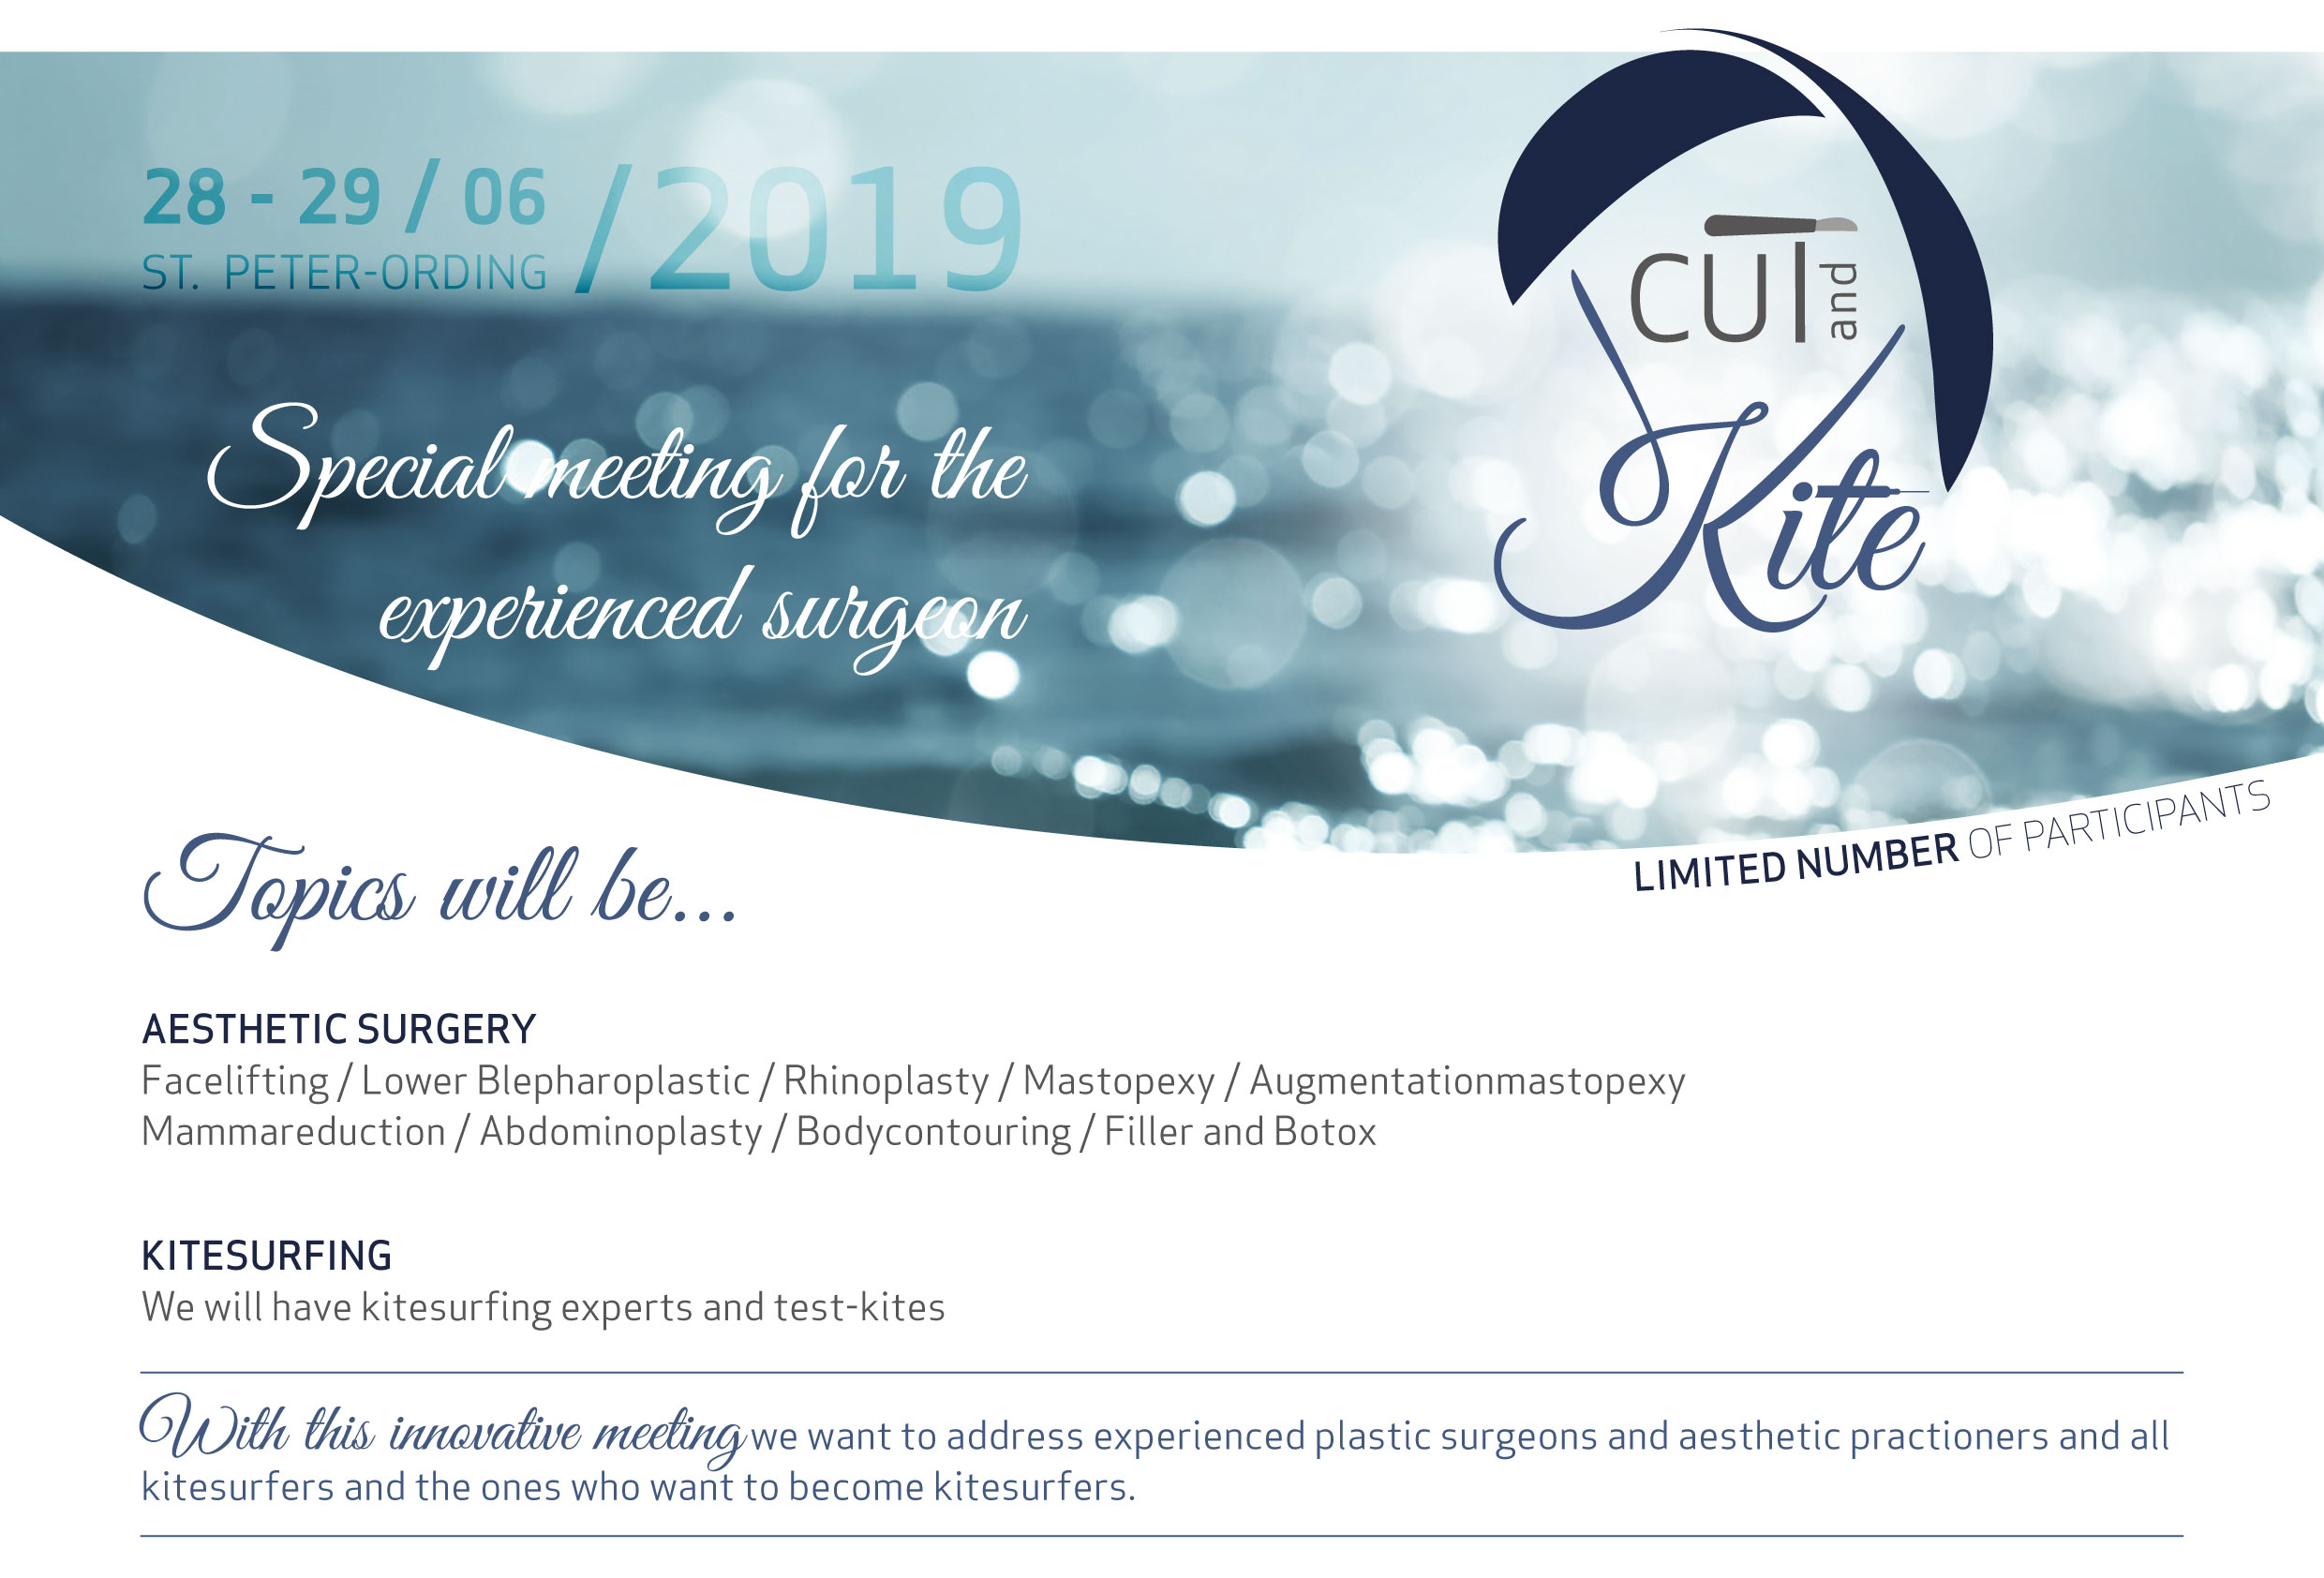 Cut and Kite